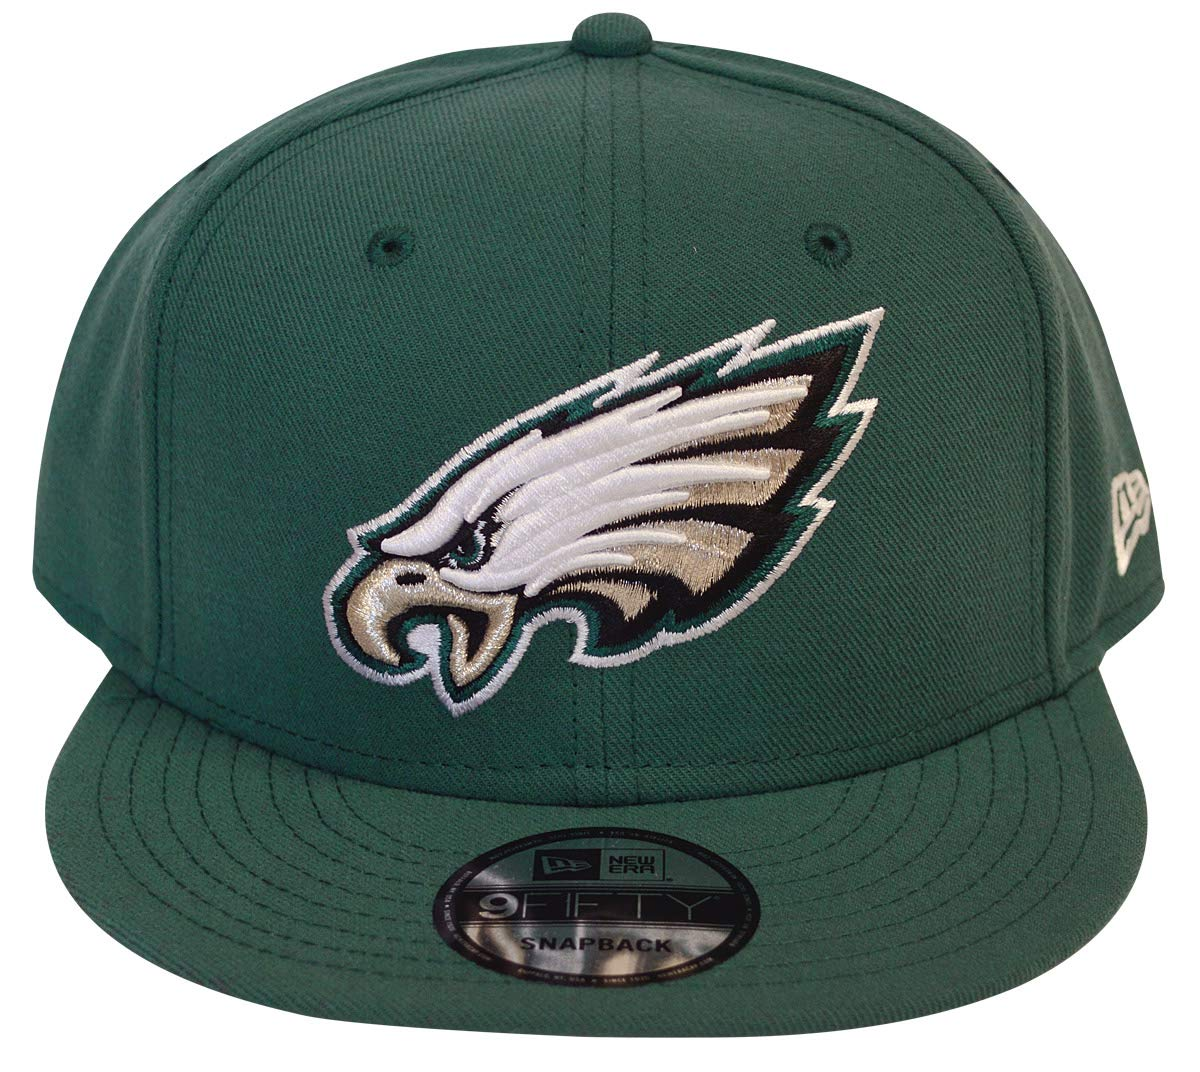 the best attitude 3c1c8 98716 Amazon.com   New Era Philadelphia Eagles Custom Collection 9Fifty Snapback  Hat (Dark Green)   Clothing